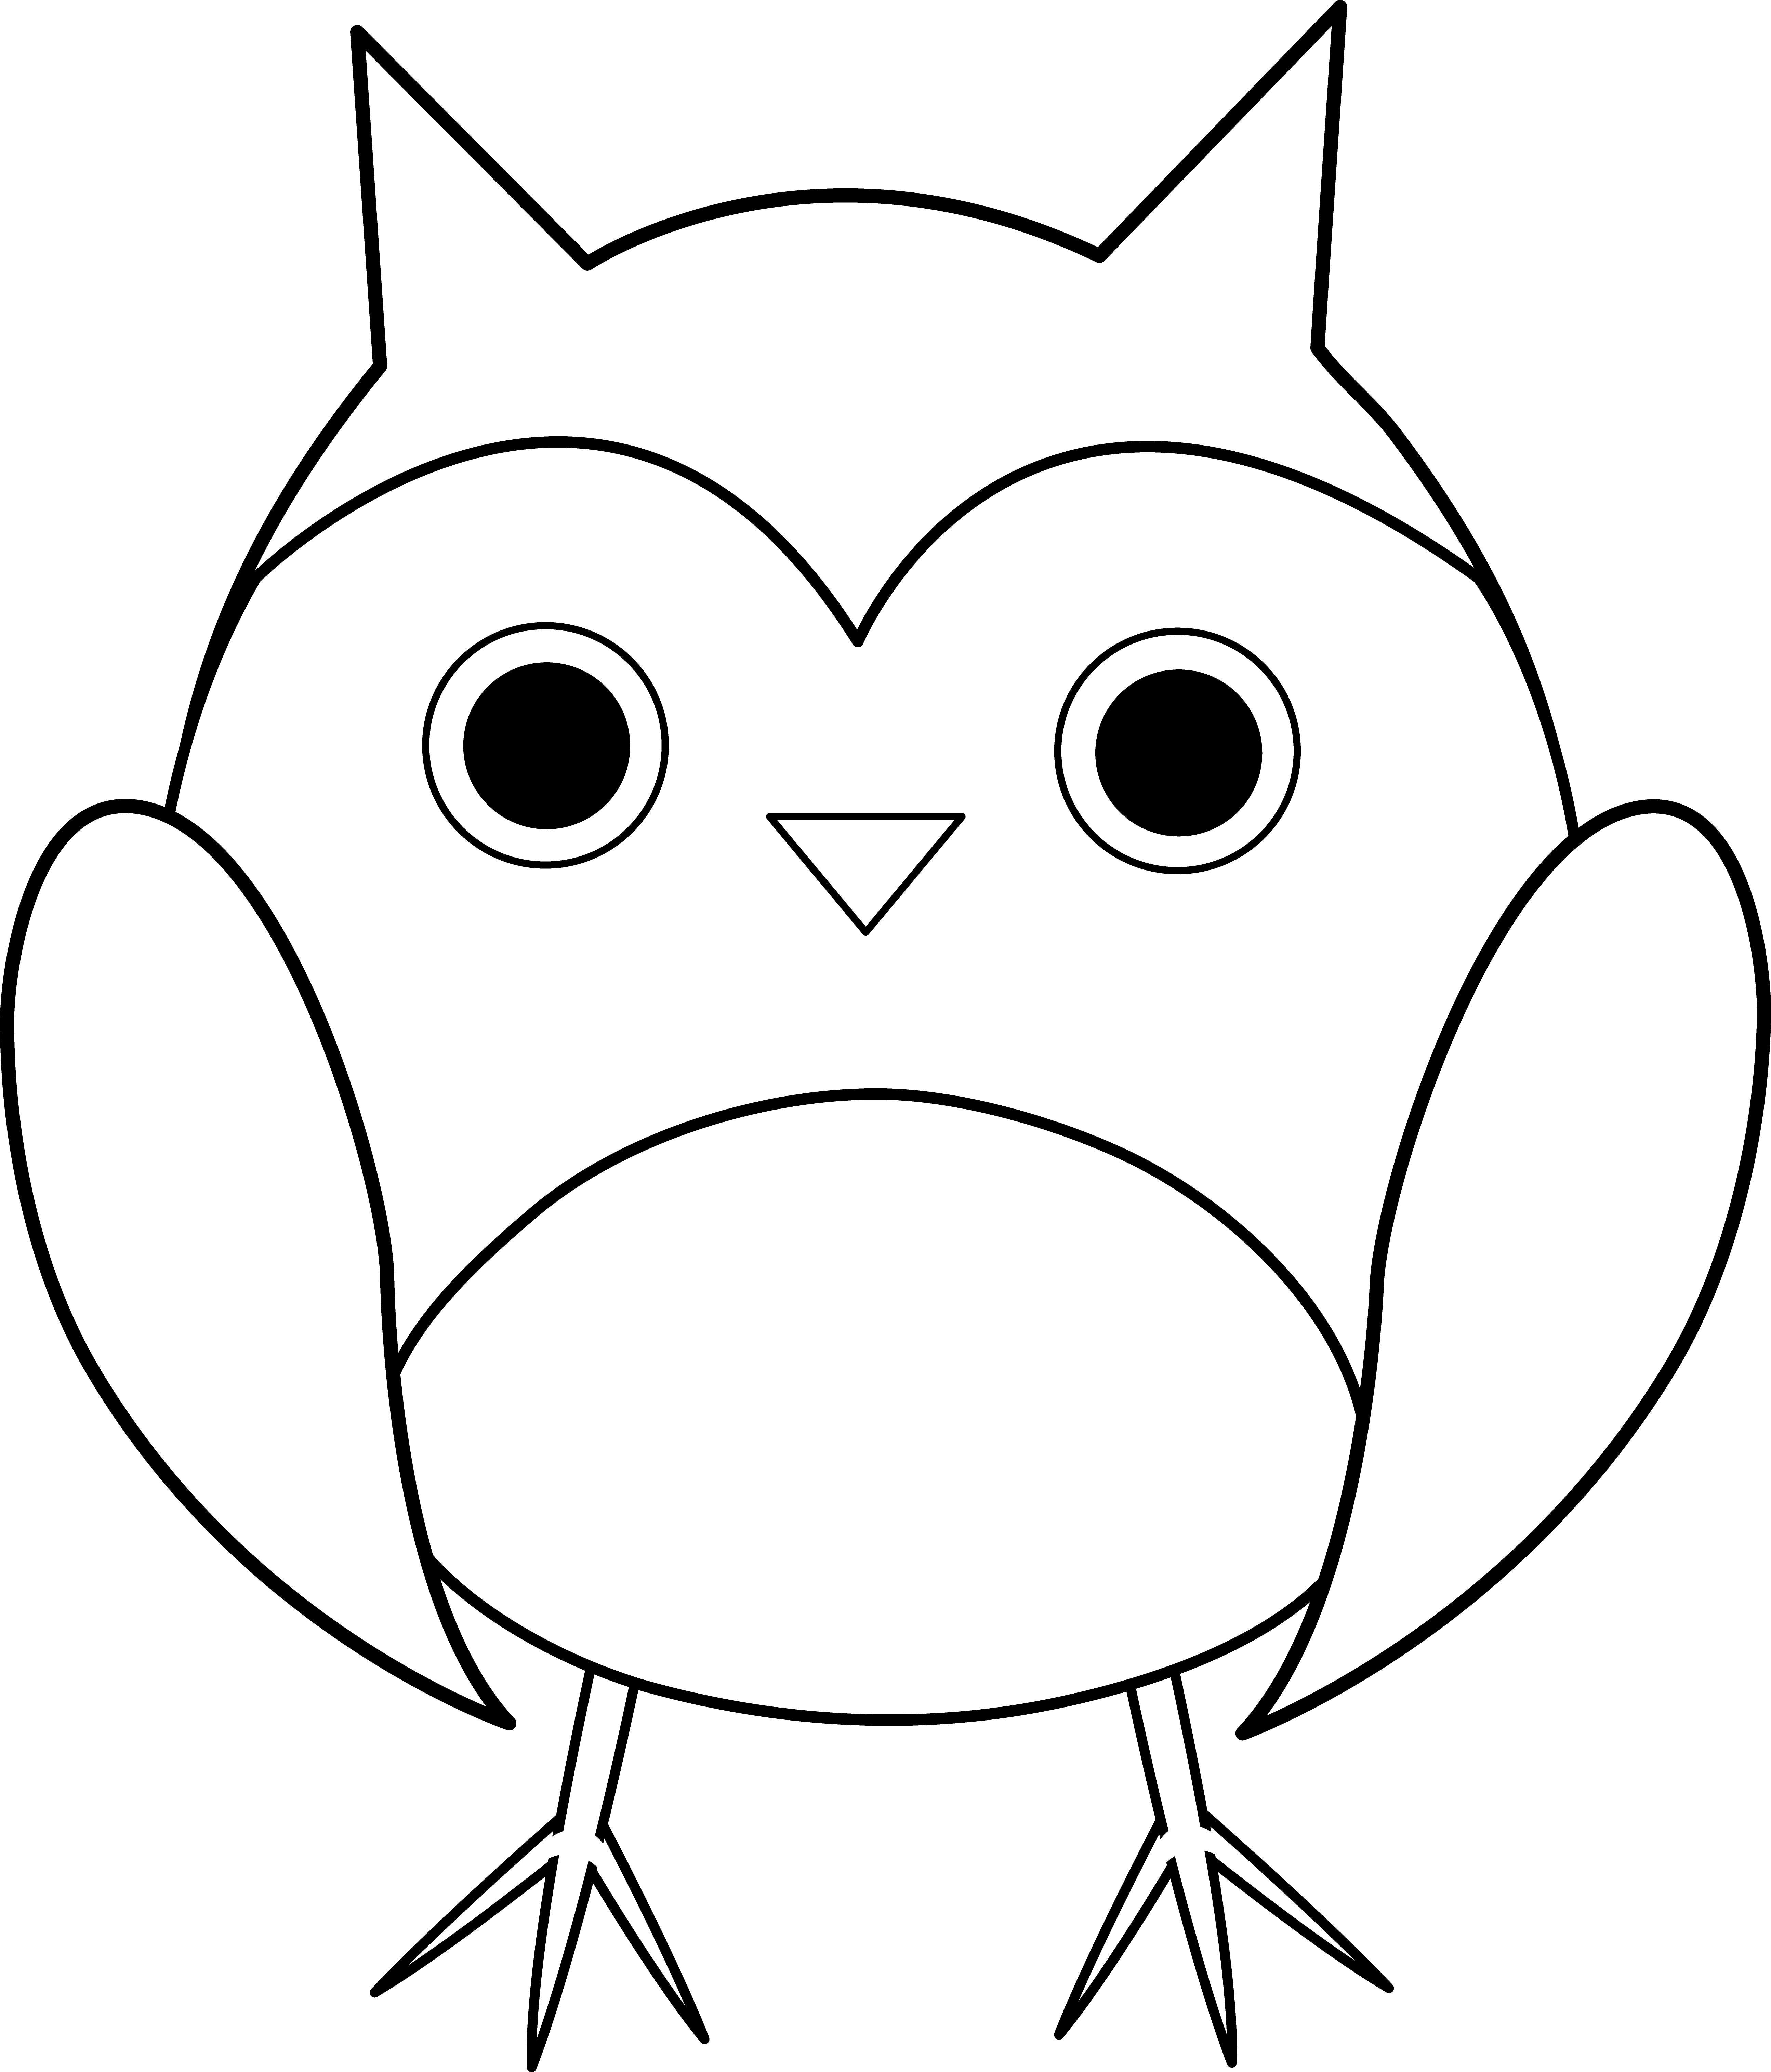 Back and white owl clipart